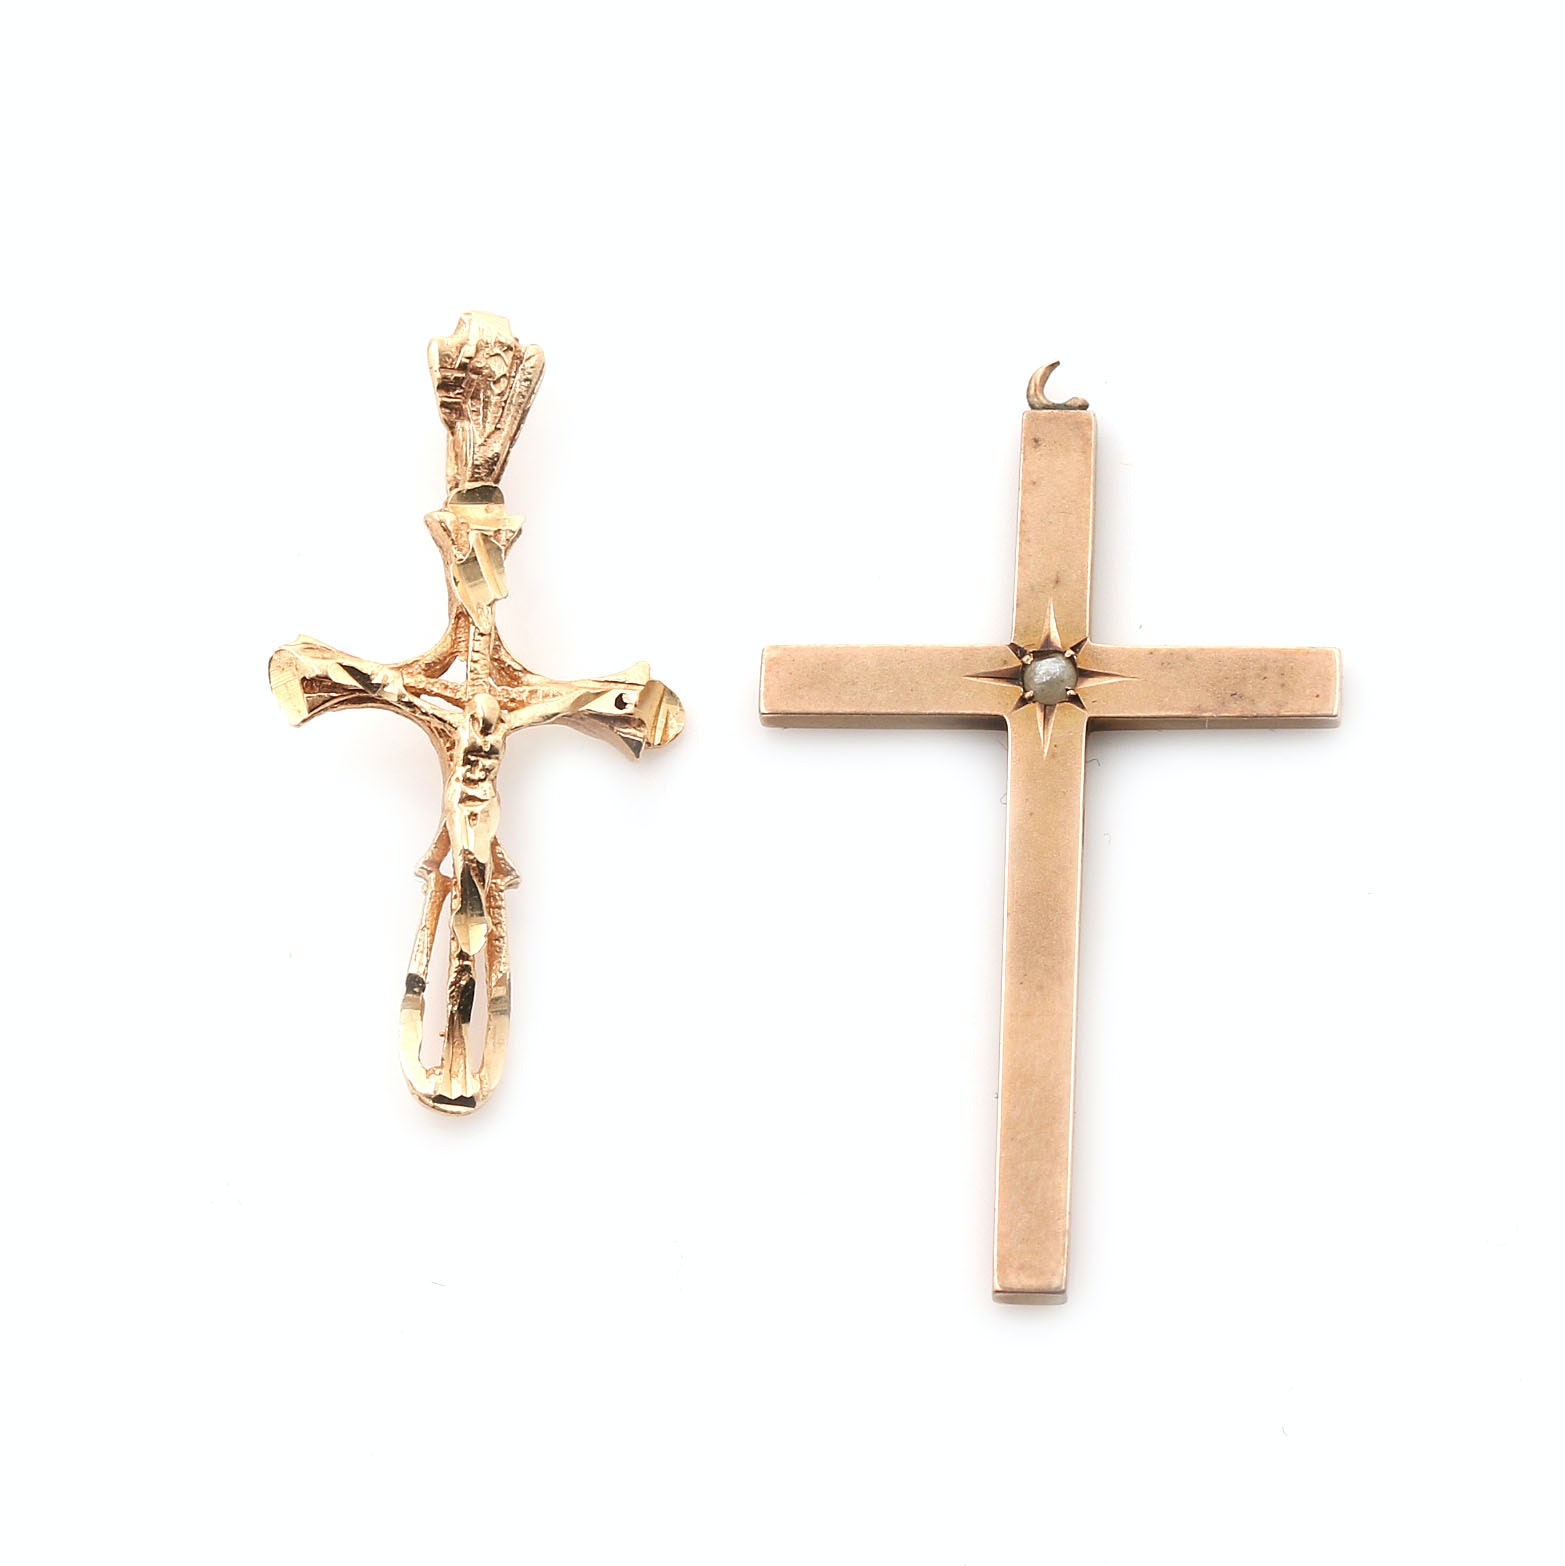 10K and 14K Yellow Gold Cross and Crucifix